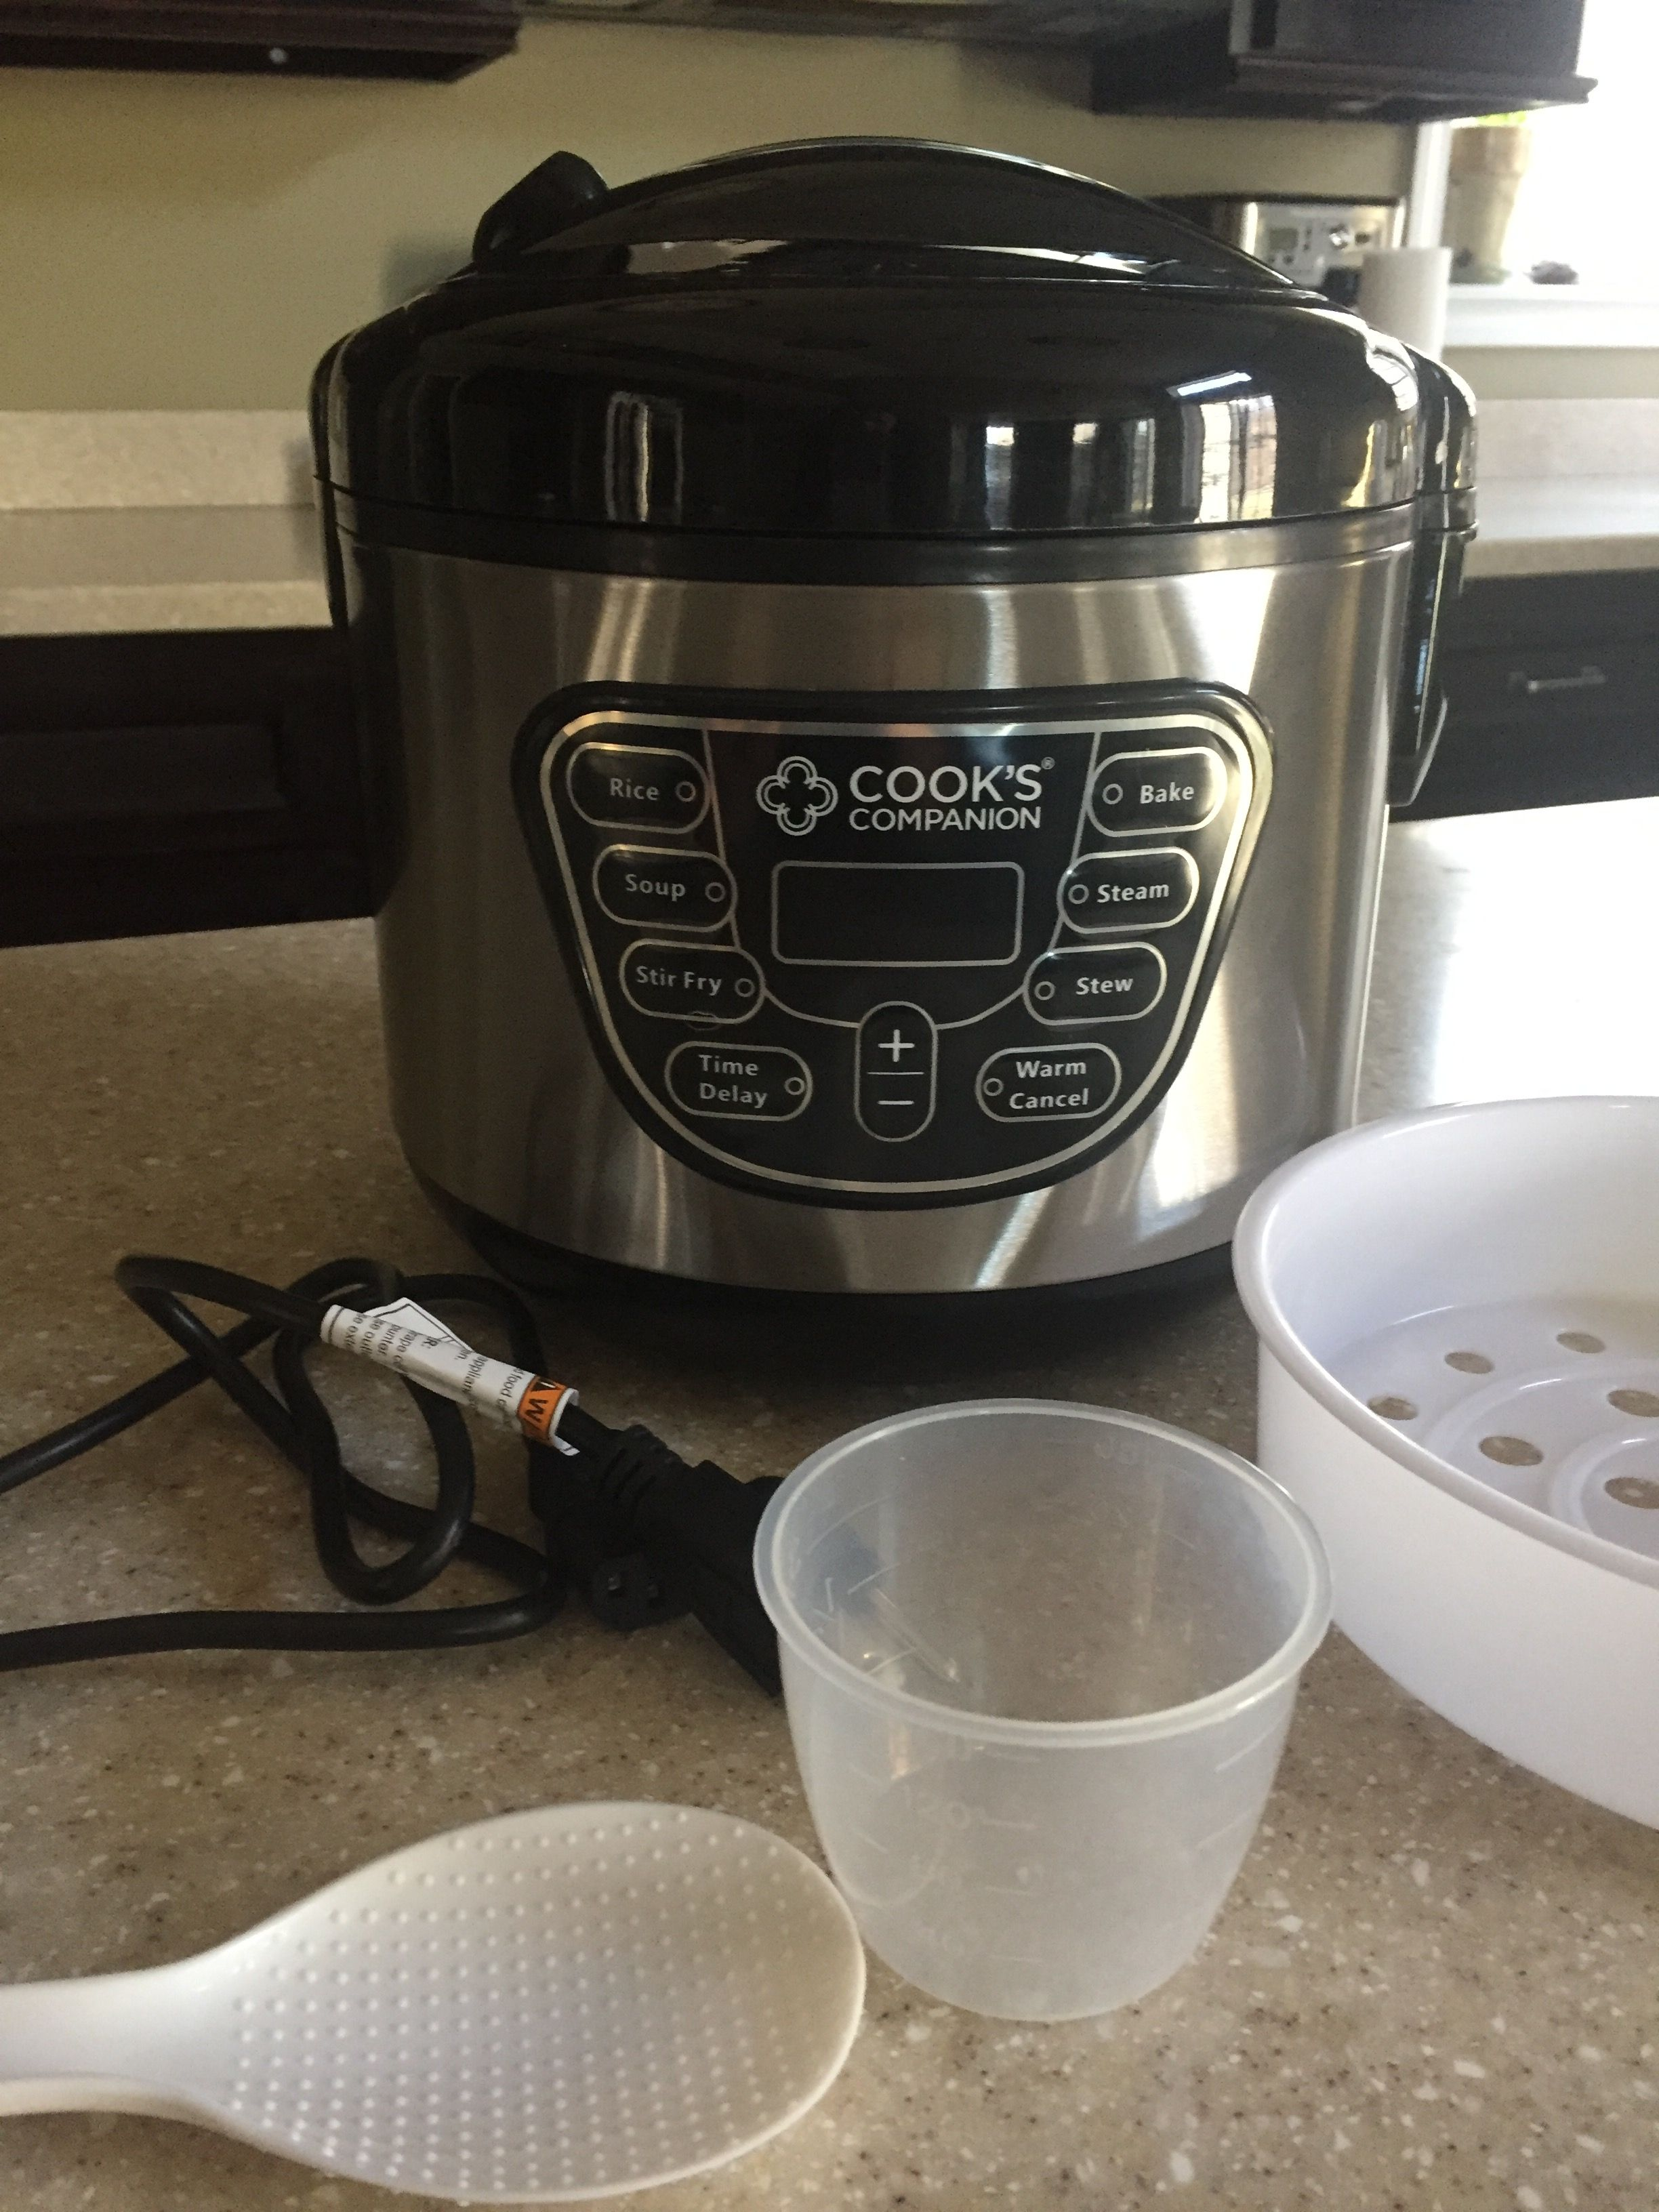 The Cook's Companion Digital Wonder Pot has been a wonderful time saver for our family.   Enter to win one for yourself!